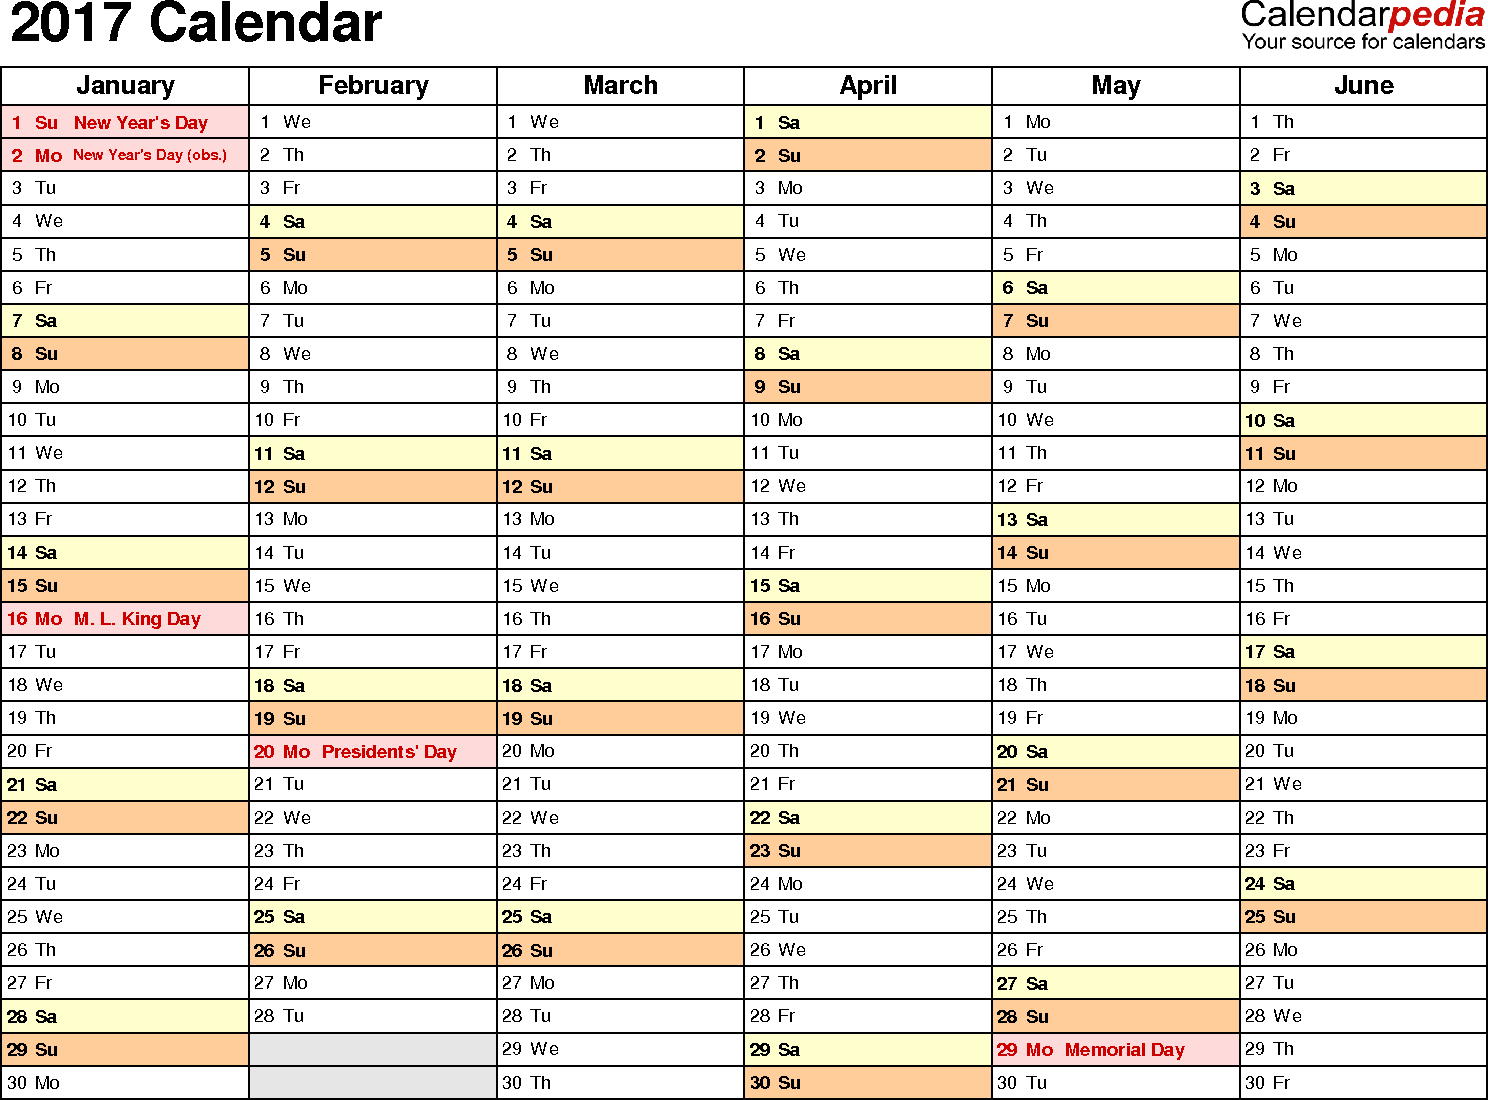 Ediblewildsus  Stunning  Calendar  Download  Free Printable Excel Templates Xls With Heavenly Template   Calendar For Excel Months Horizontally  Pages Landscape Orientation With Charming Excel Unique Random Number Generator Also Open Excel File Read Only In Addition Assets And Liabilities Worksheet Excel And Project Budget Excel Template As Well As Logical Function In Excel Additionally Blank Excel Templates From Calendarpediacom With Ediblewildsus  Heavenly  Calendar  Download  Free Printable Excel Templates Xls With Charming Template   Calendar For Excel Months Horizontally  Pages Landscape Orientation And Stunning Excel Unique Random Number Generator Also Open Excel File Read Only In Addition Assets And Liabilities Worksheet Excel From Calendarpediacom